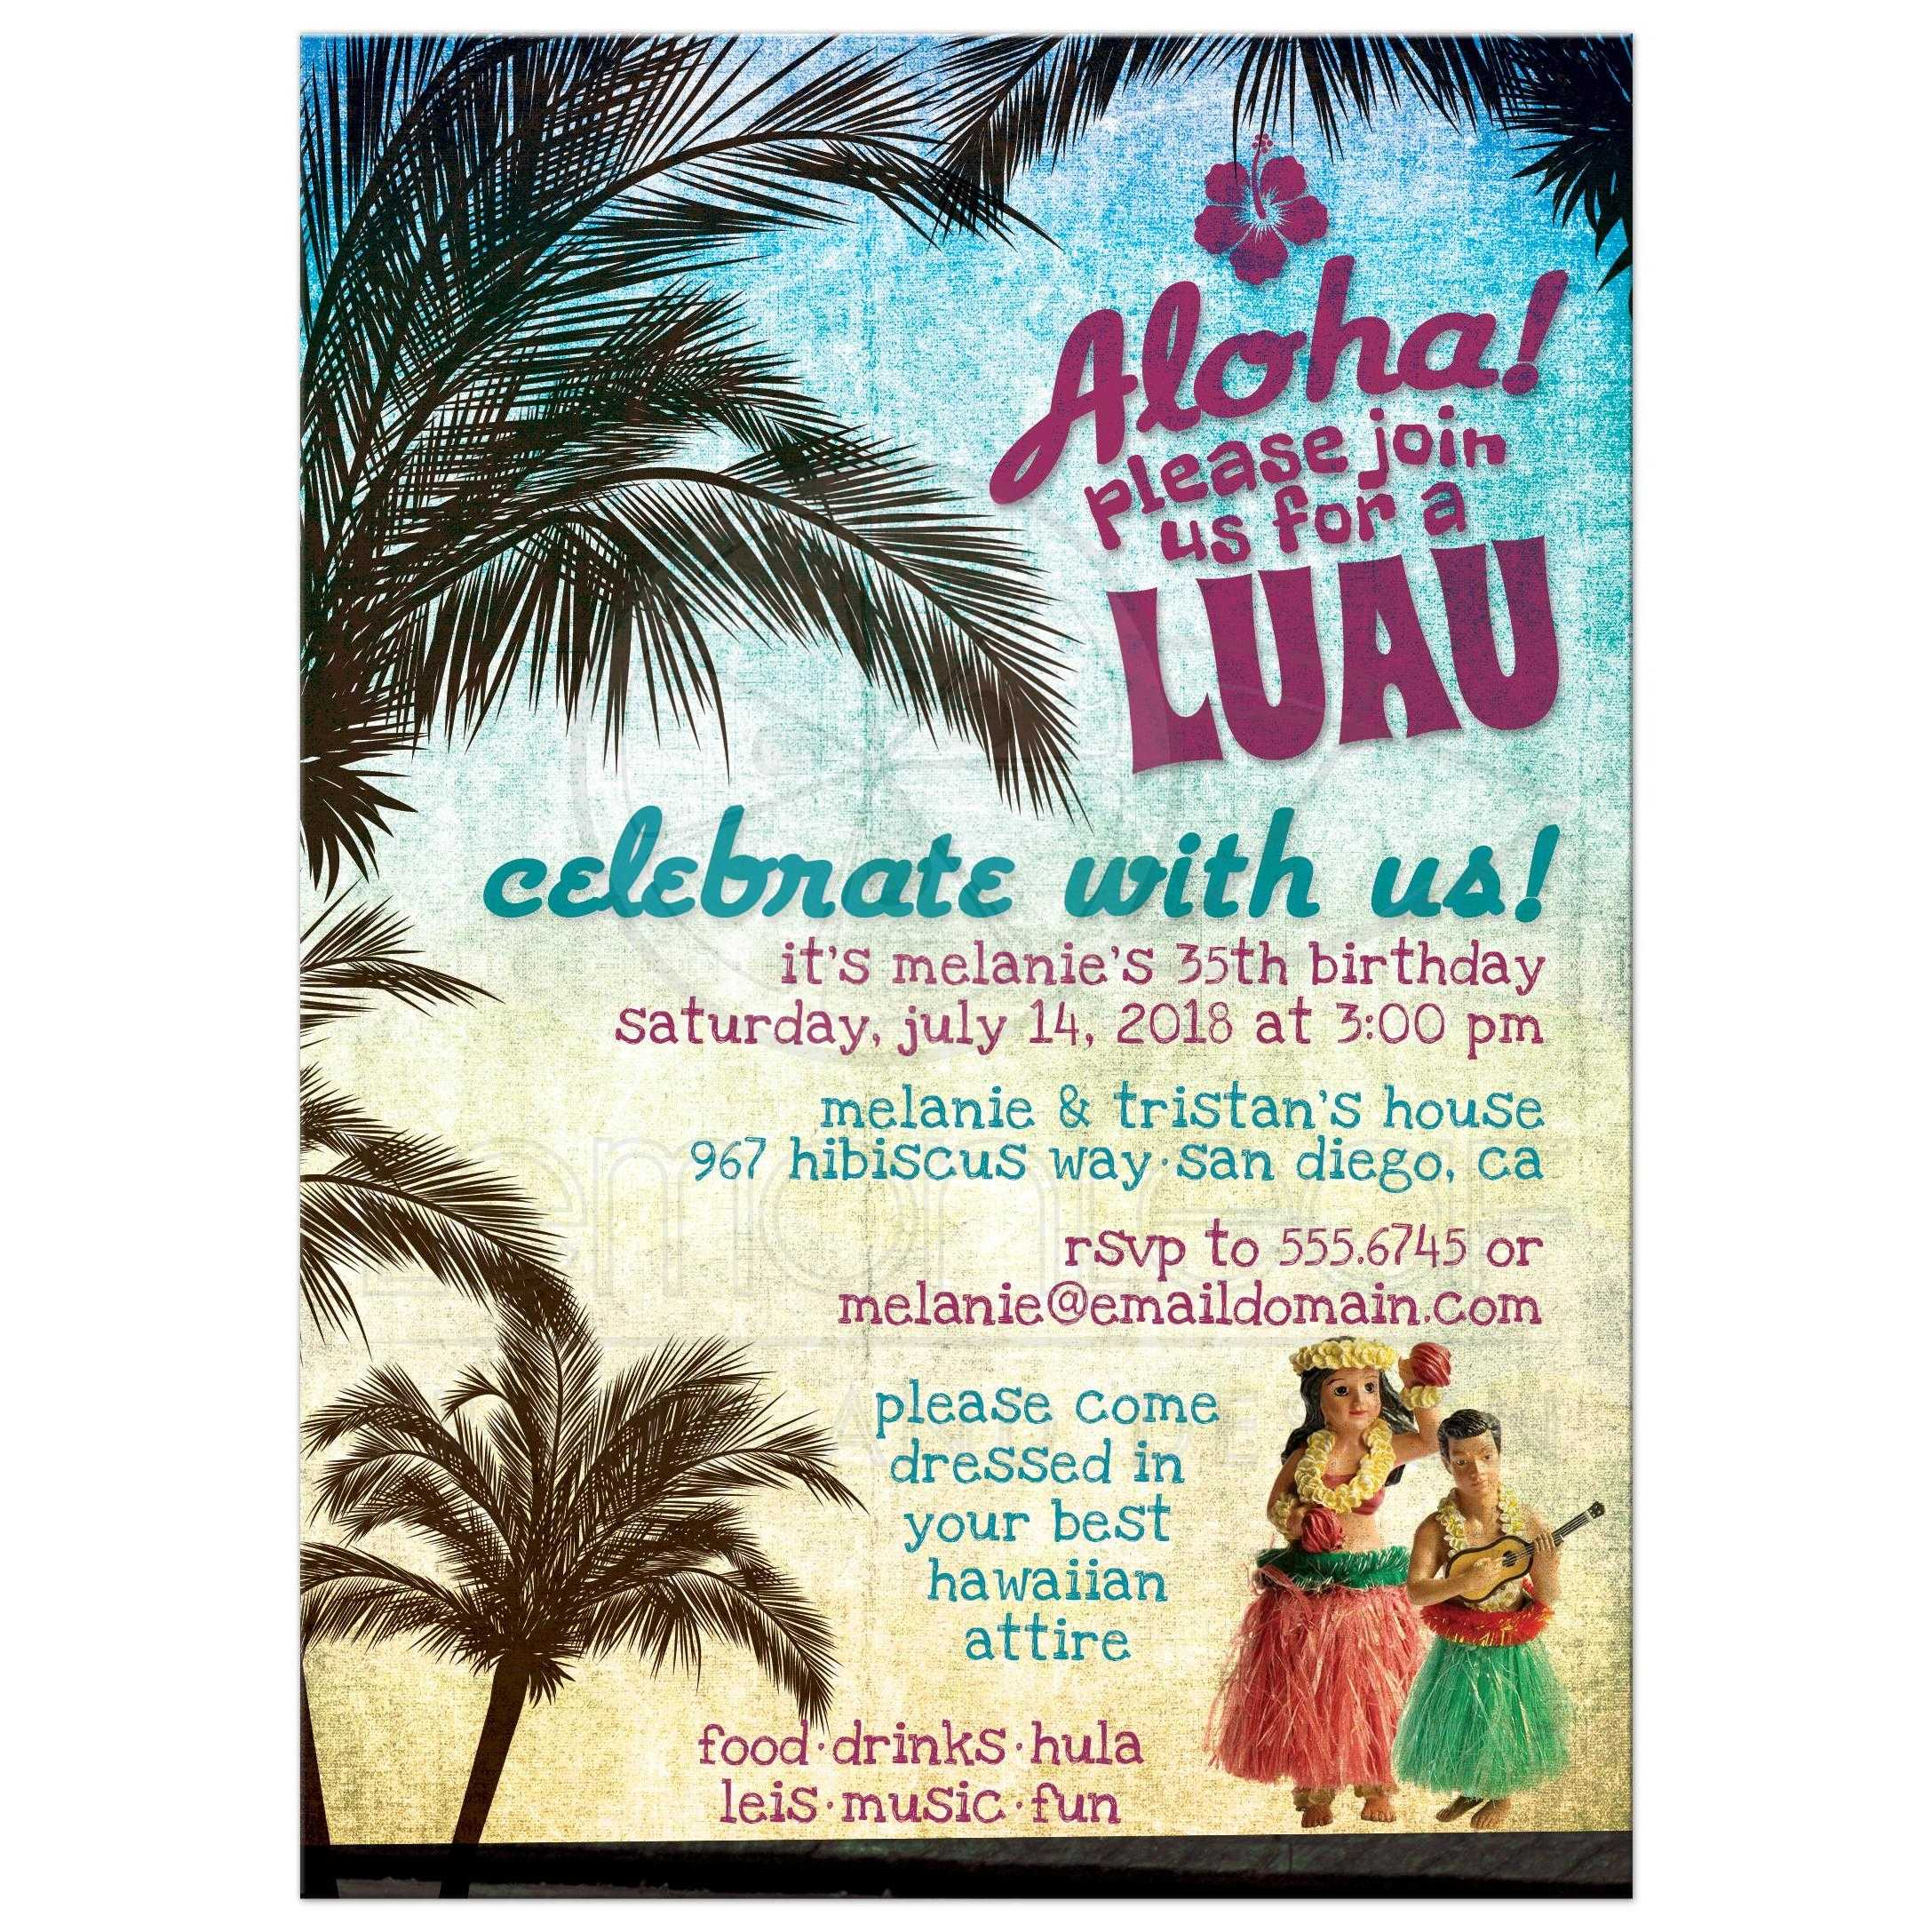 luau invitations  retro hawaiian beach party, invitation samples